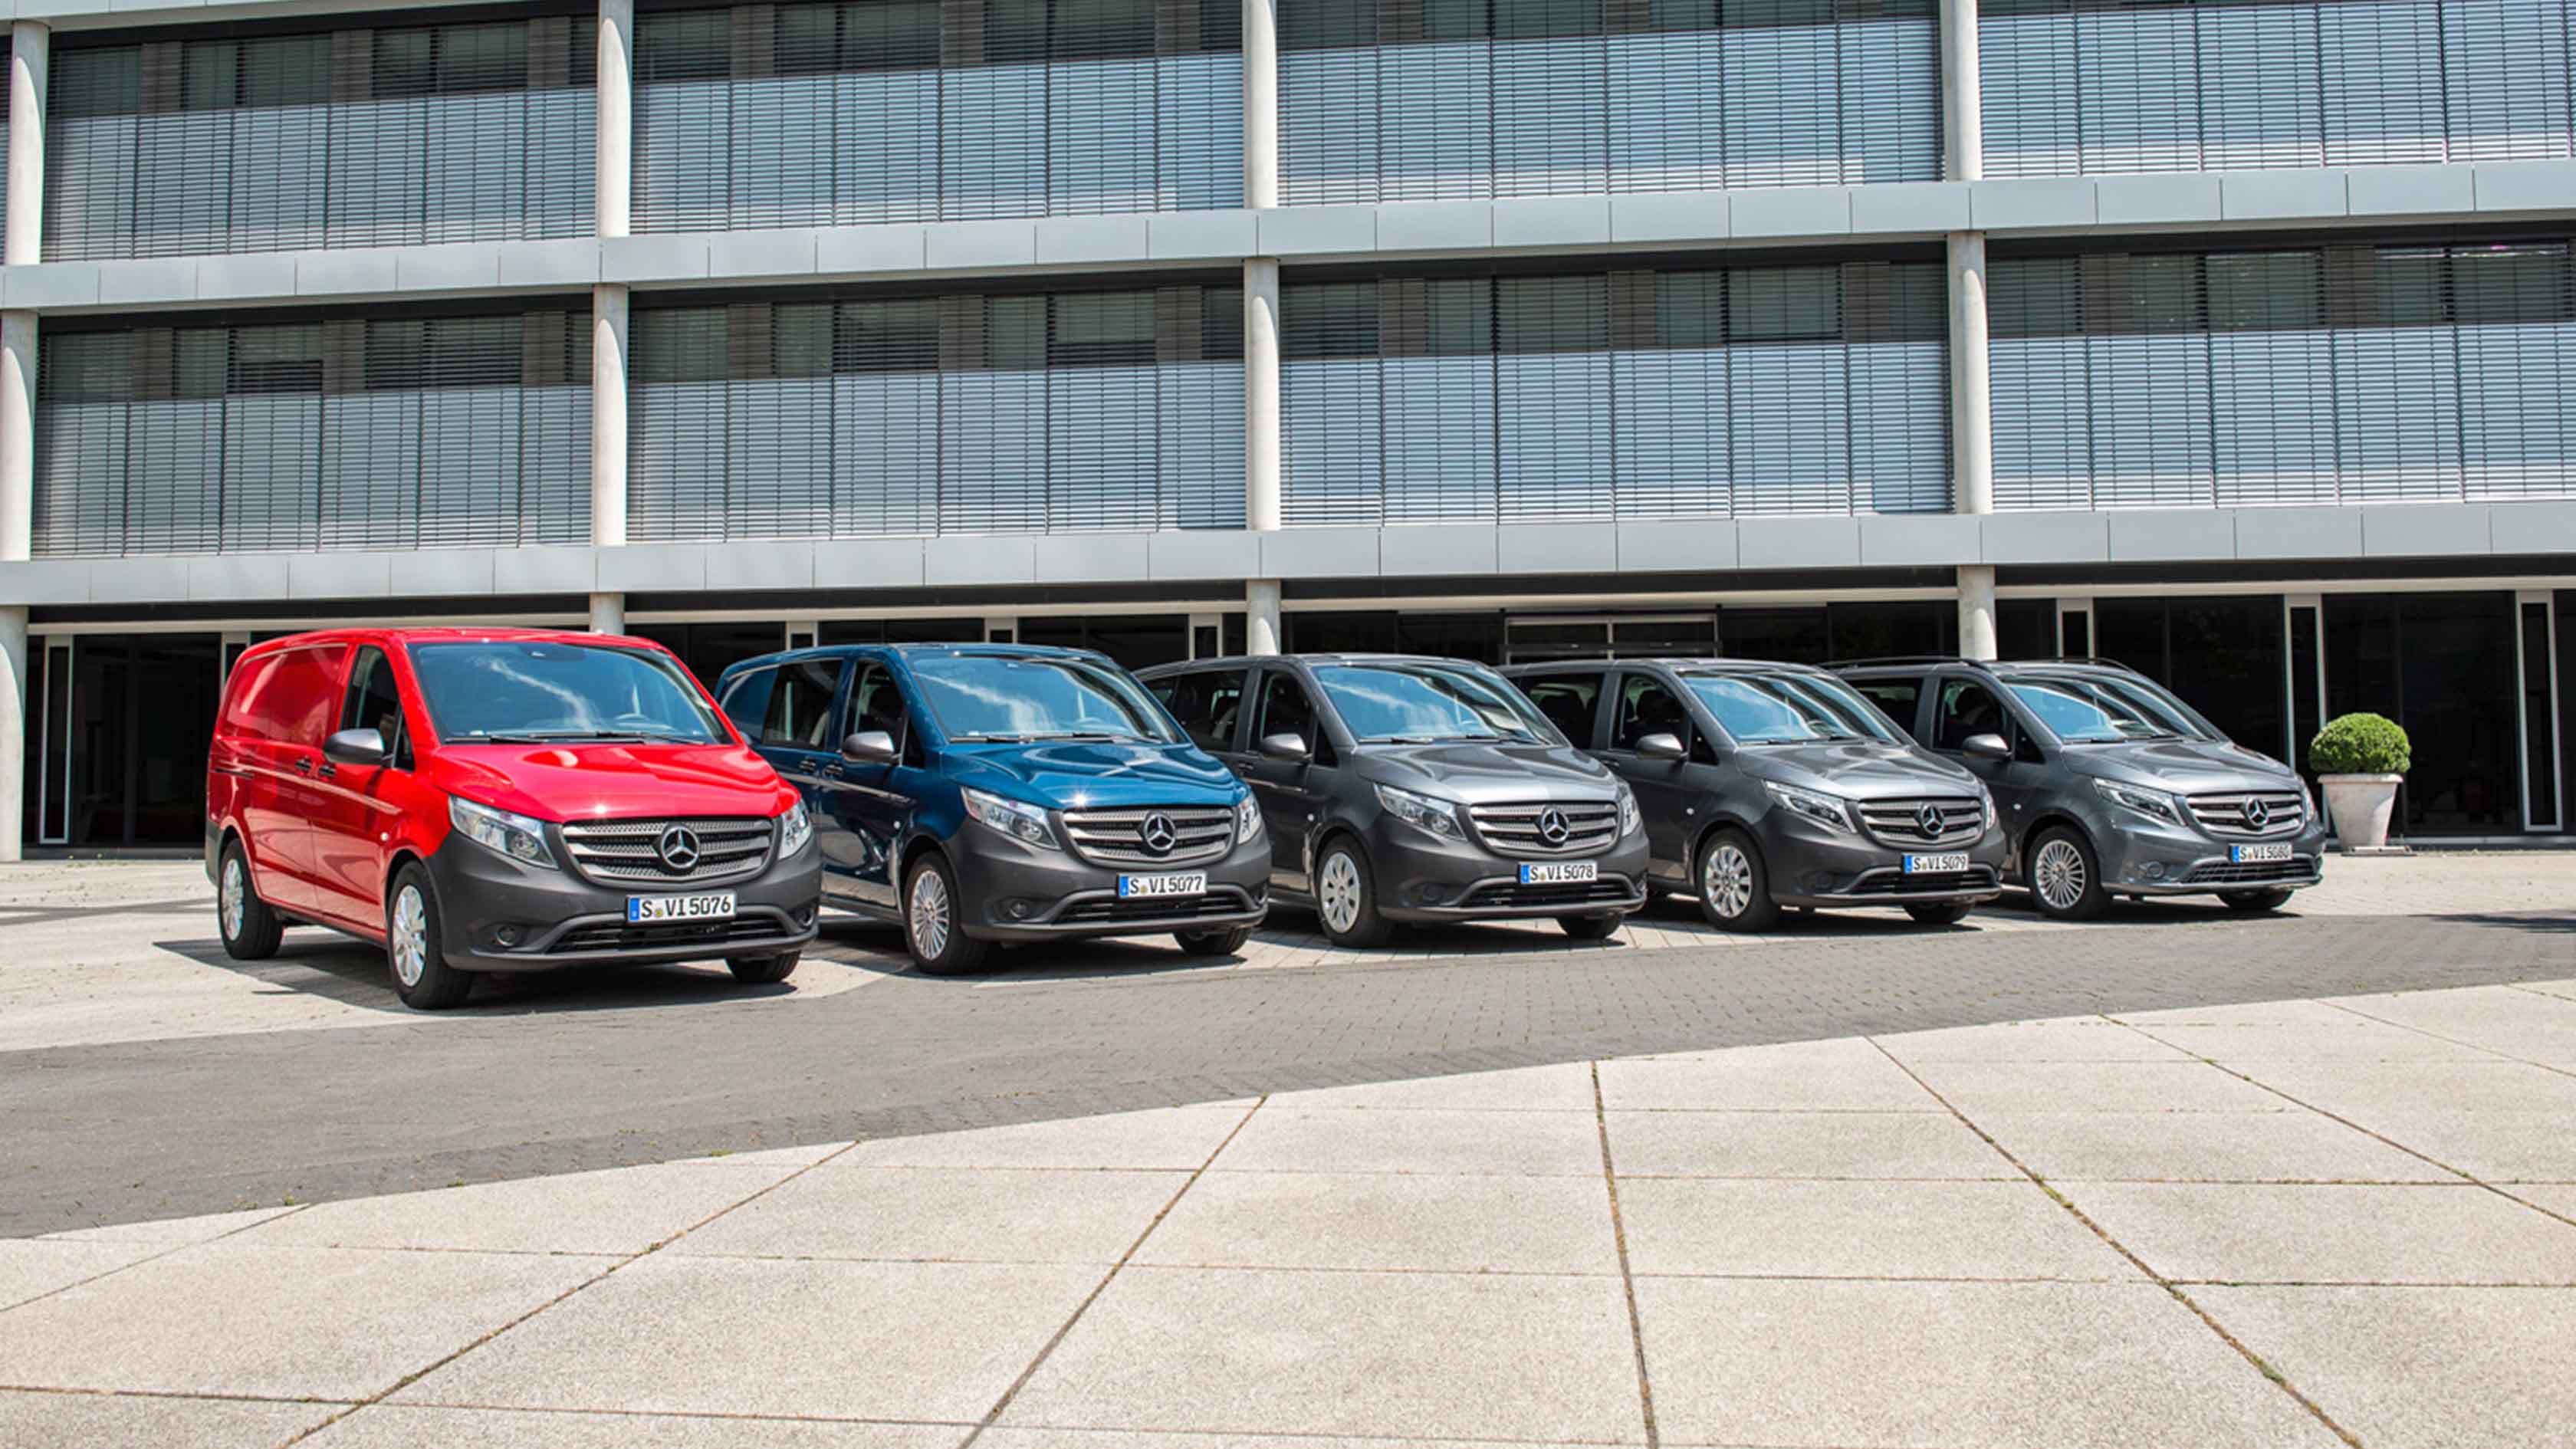 Новые автомобили Mercedes-Benz Vito Tourer BASE Vito Tourer PRO Vito Tourer SELECT